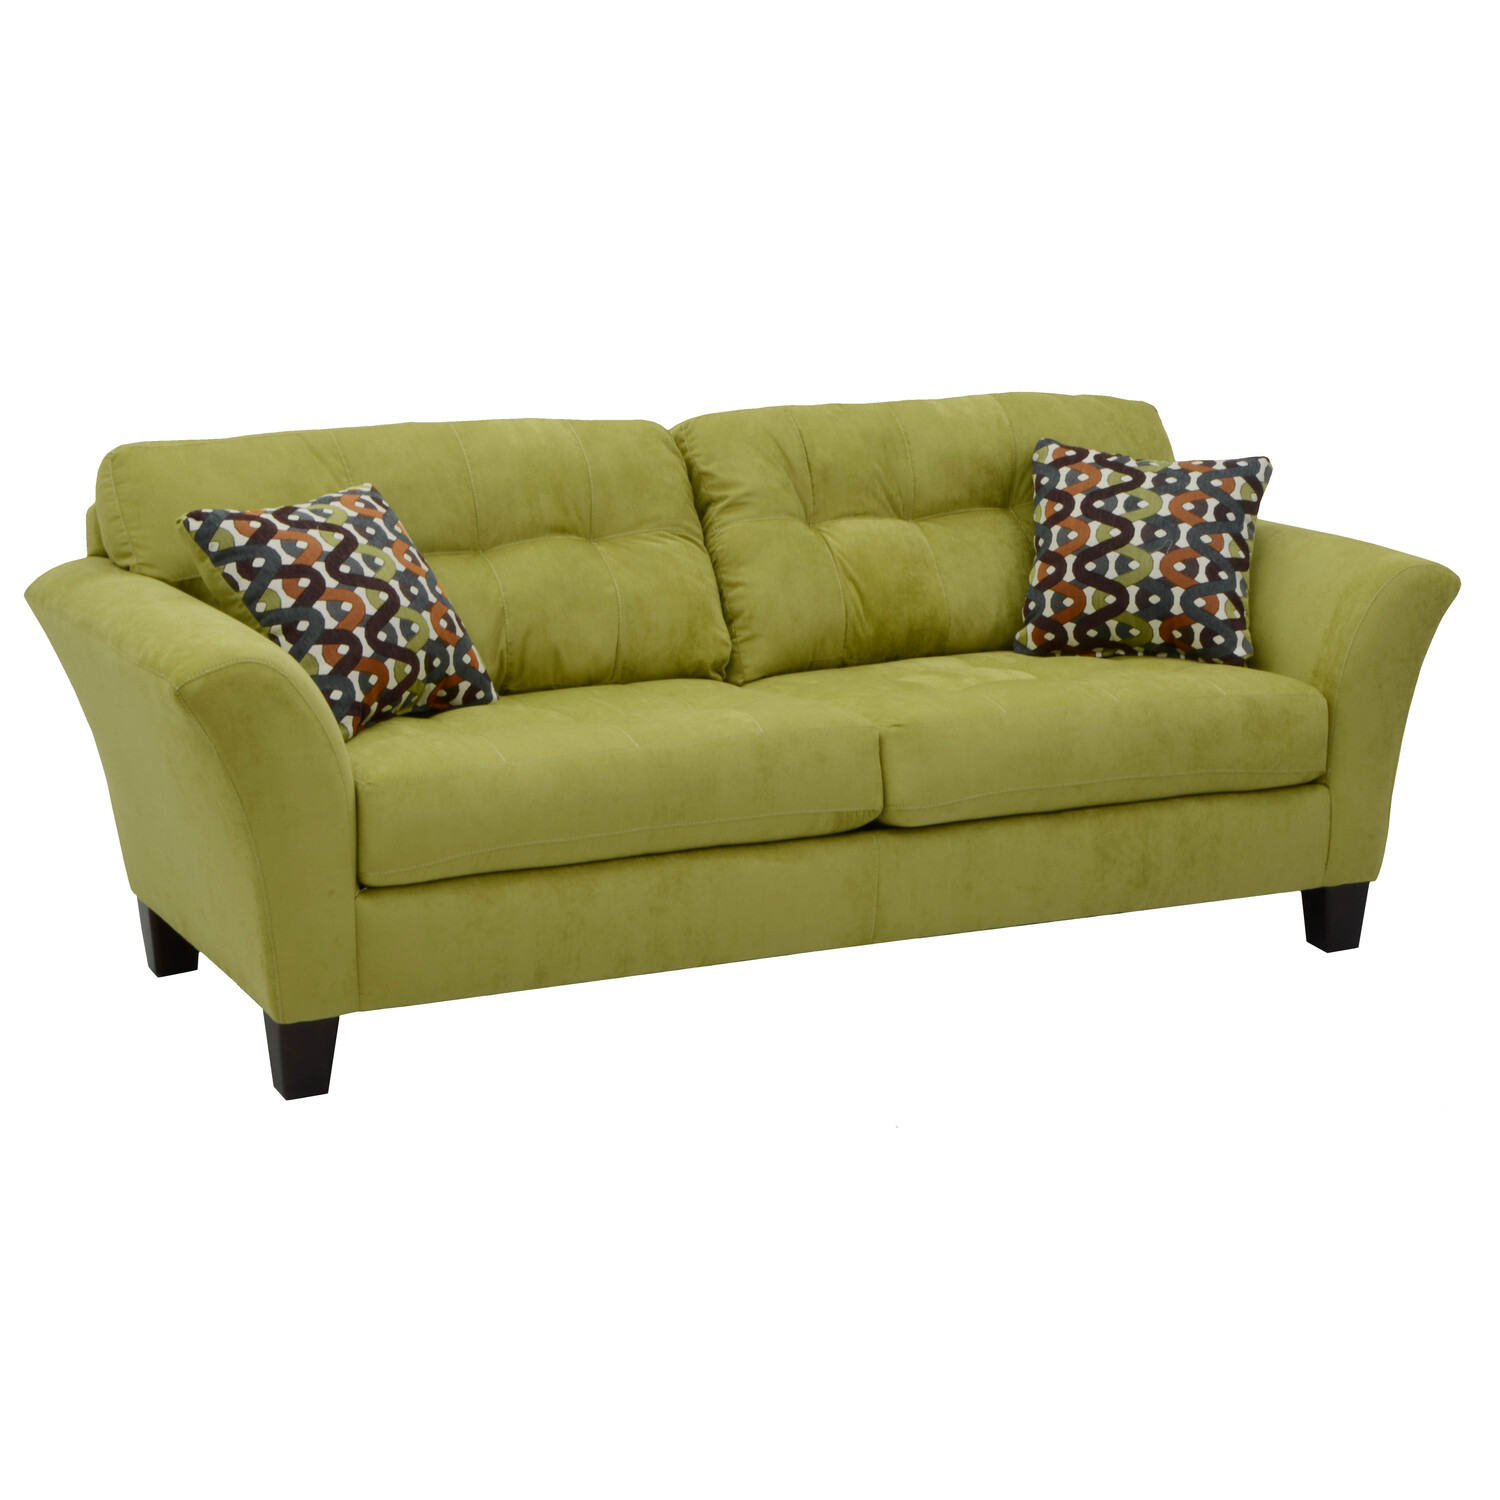 jackson furniture sofa andrew martin bed halle by oj commerce 659 00